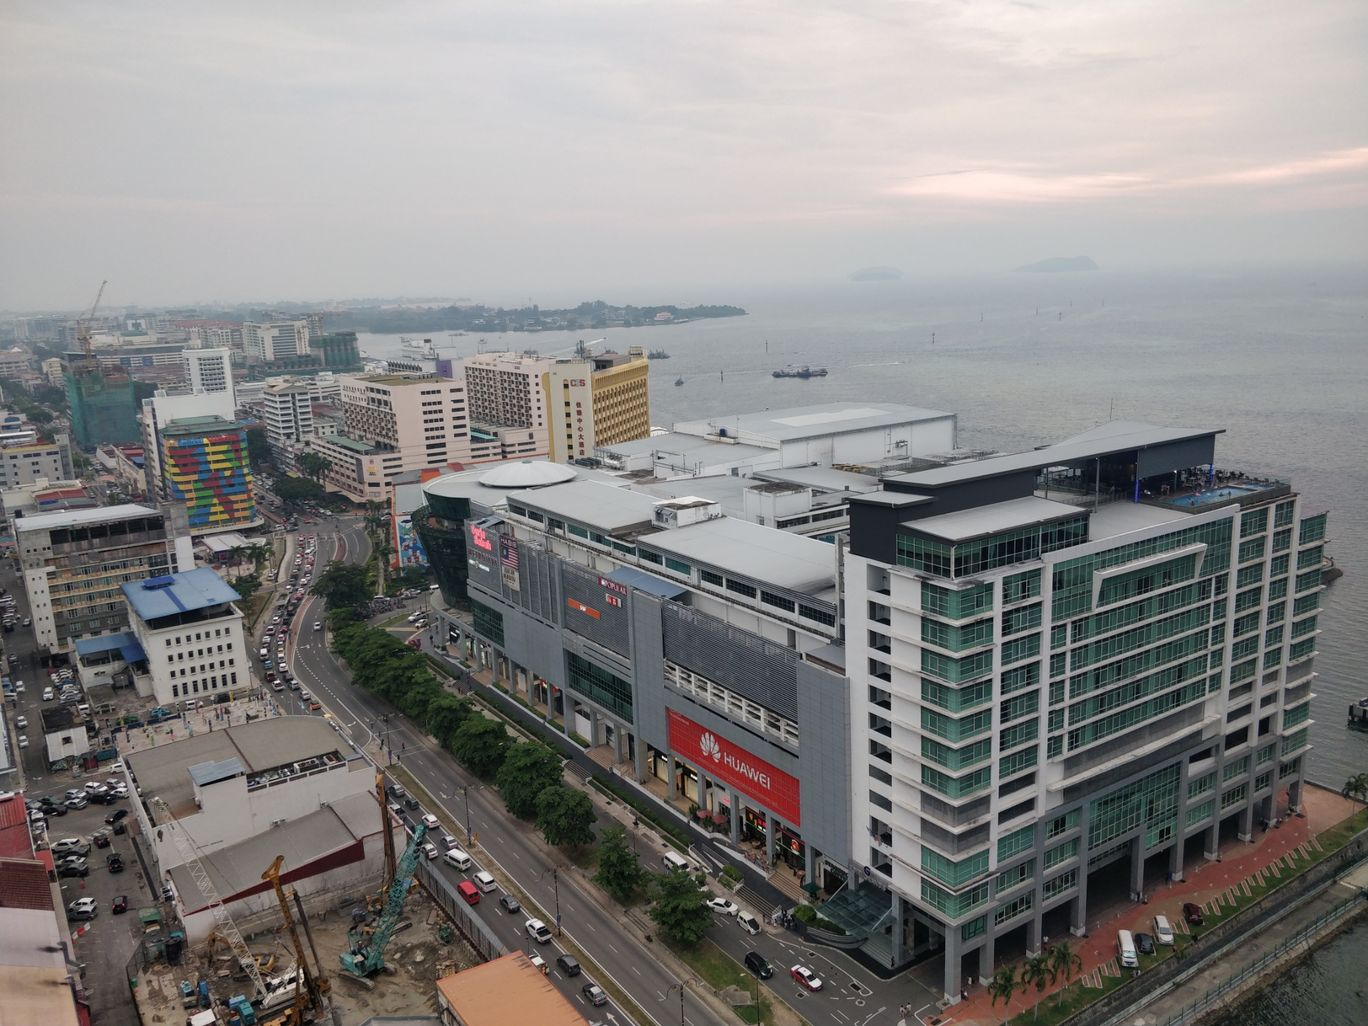 Photo of Kota Kinabalu By bhupesh kekre